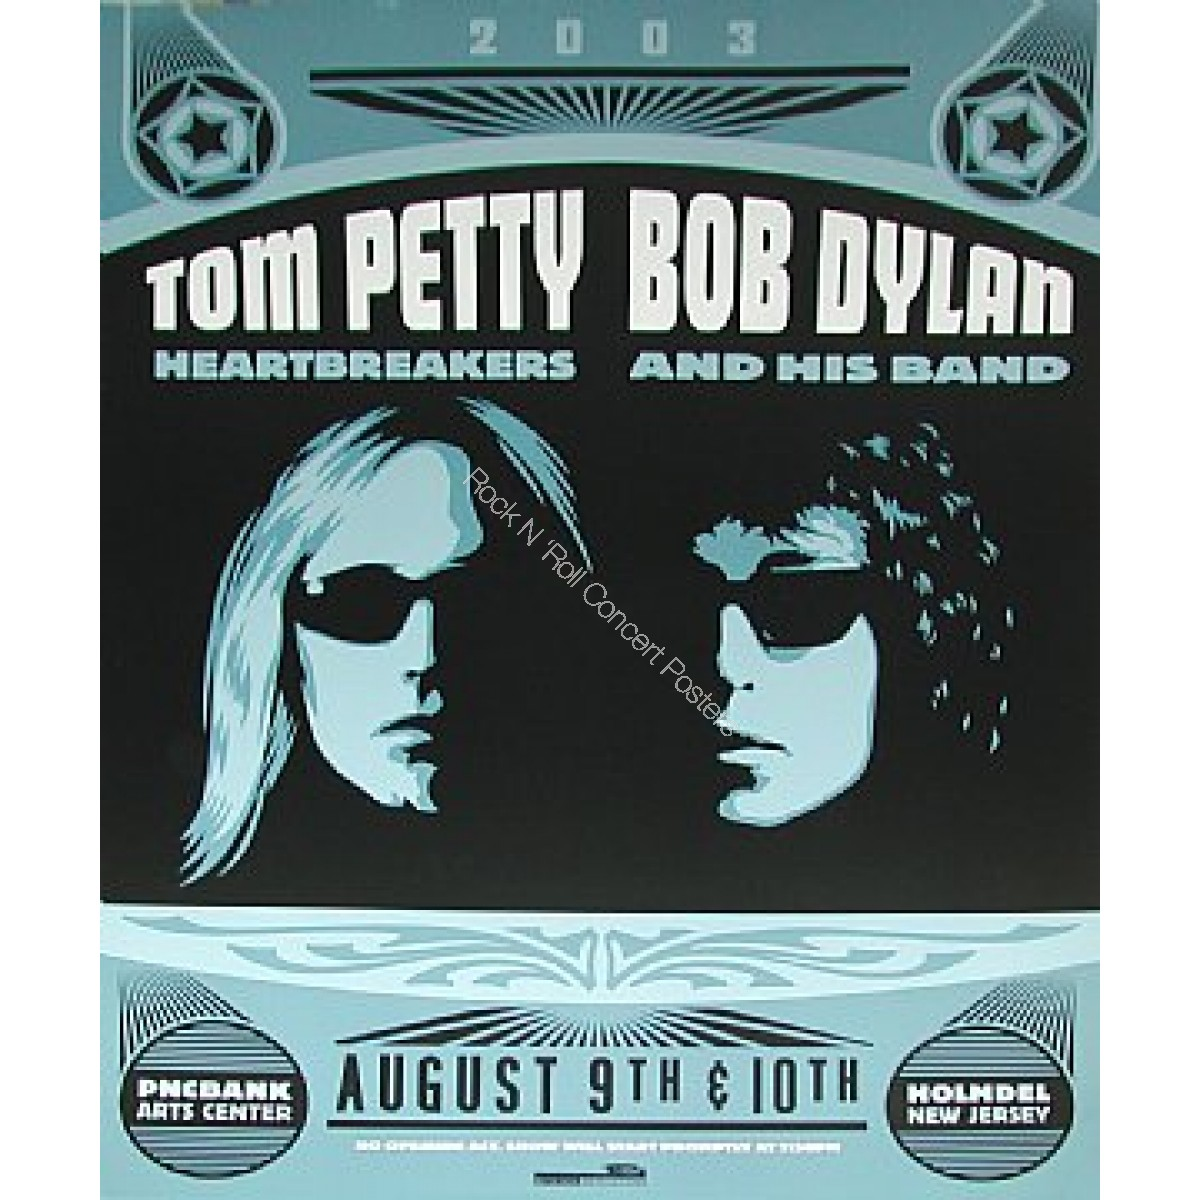 Bob Dylan & Tom Petty PNC Bank Arena Holmdel New Jersey 2003